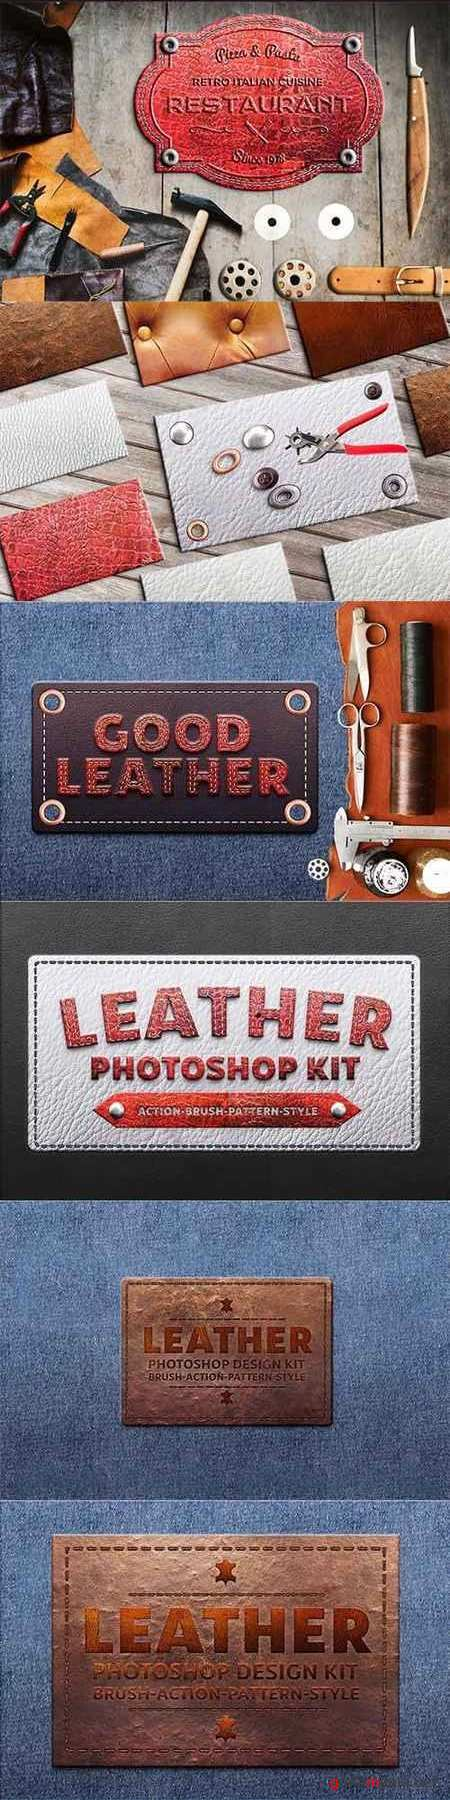 Photoshop Leather Kit - 2200411